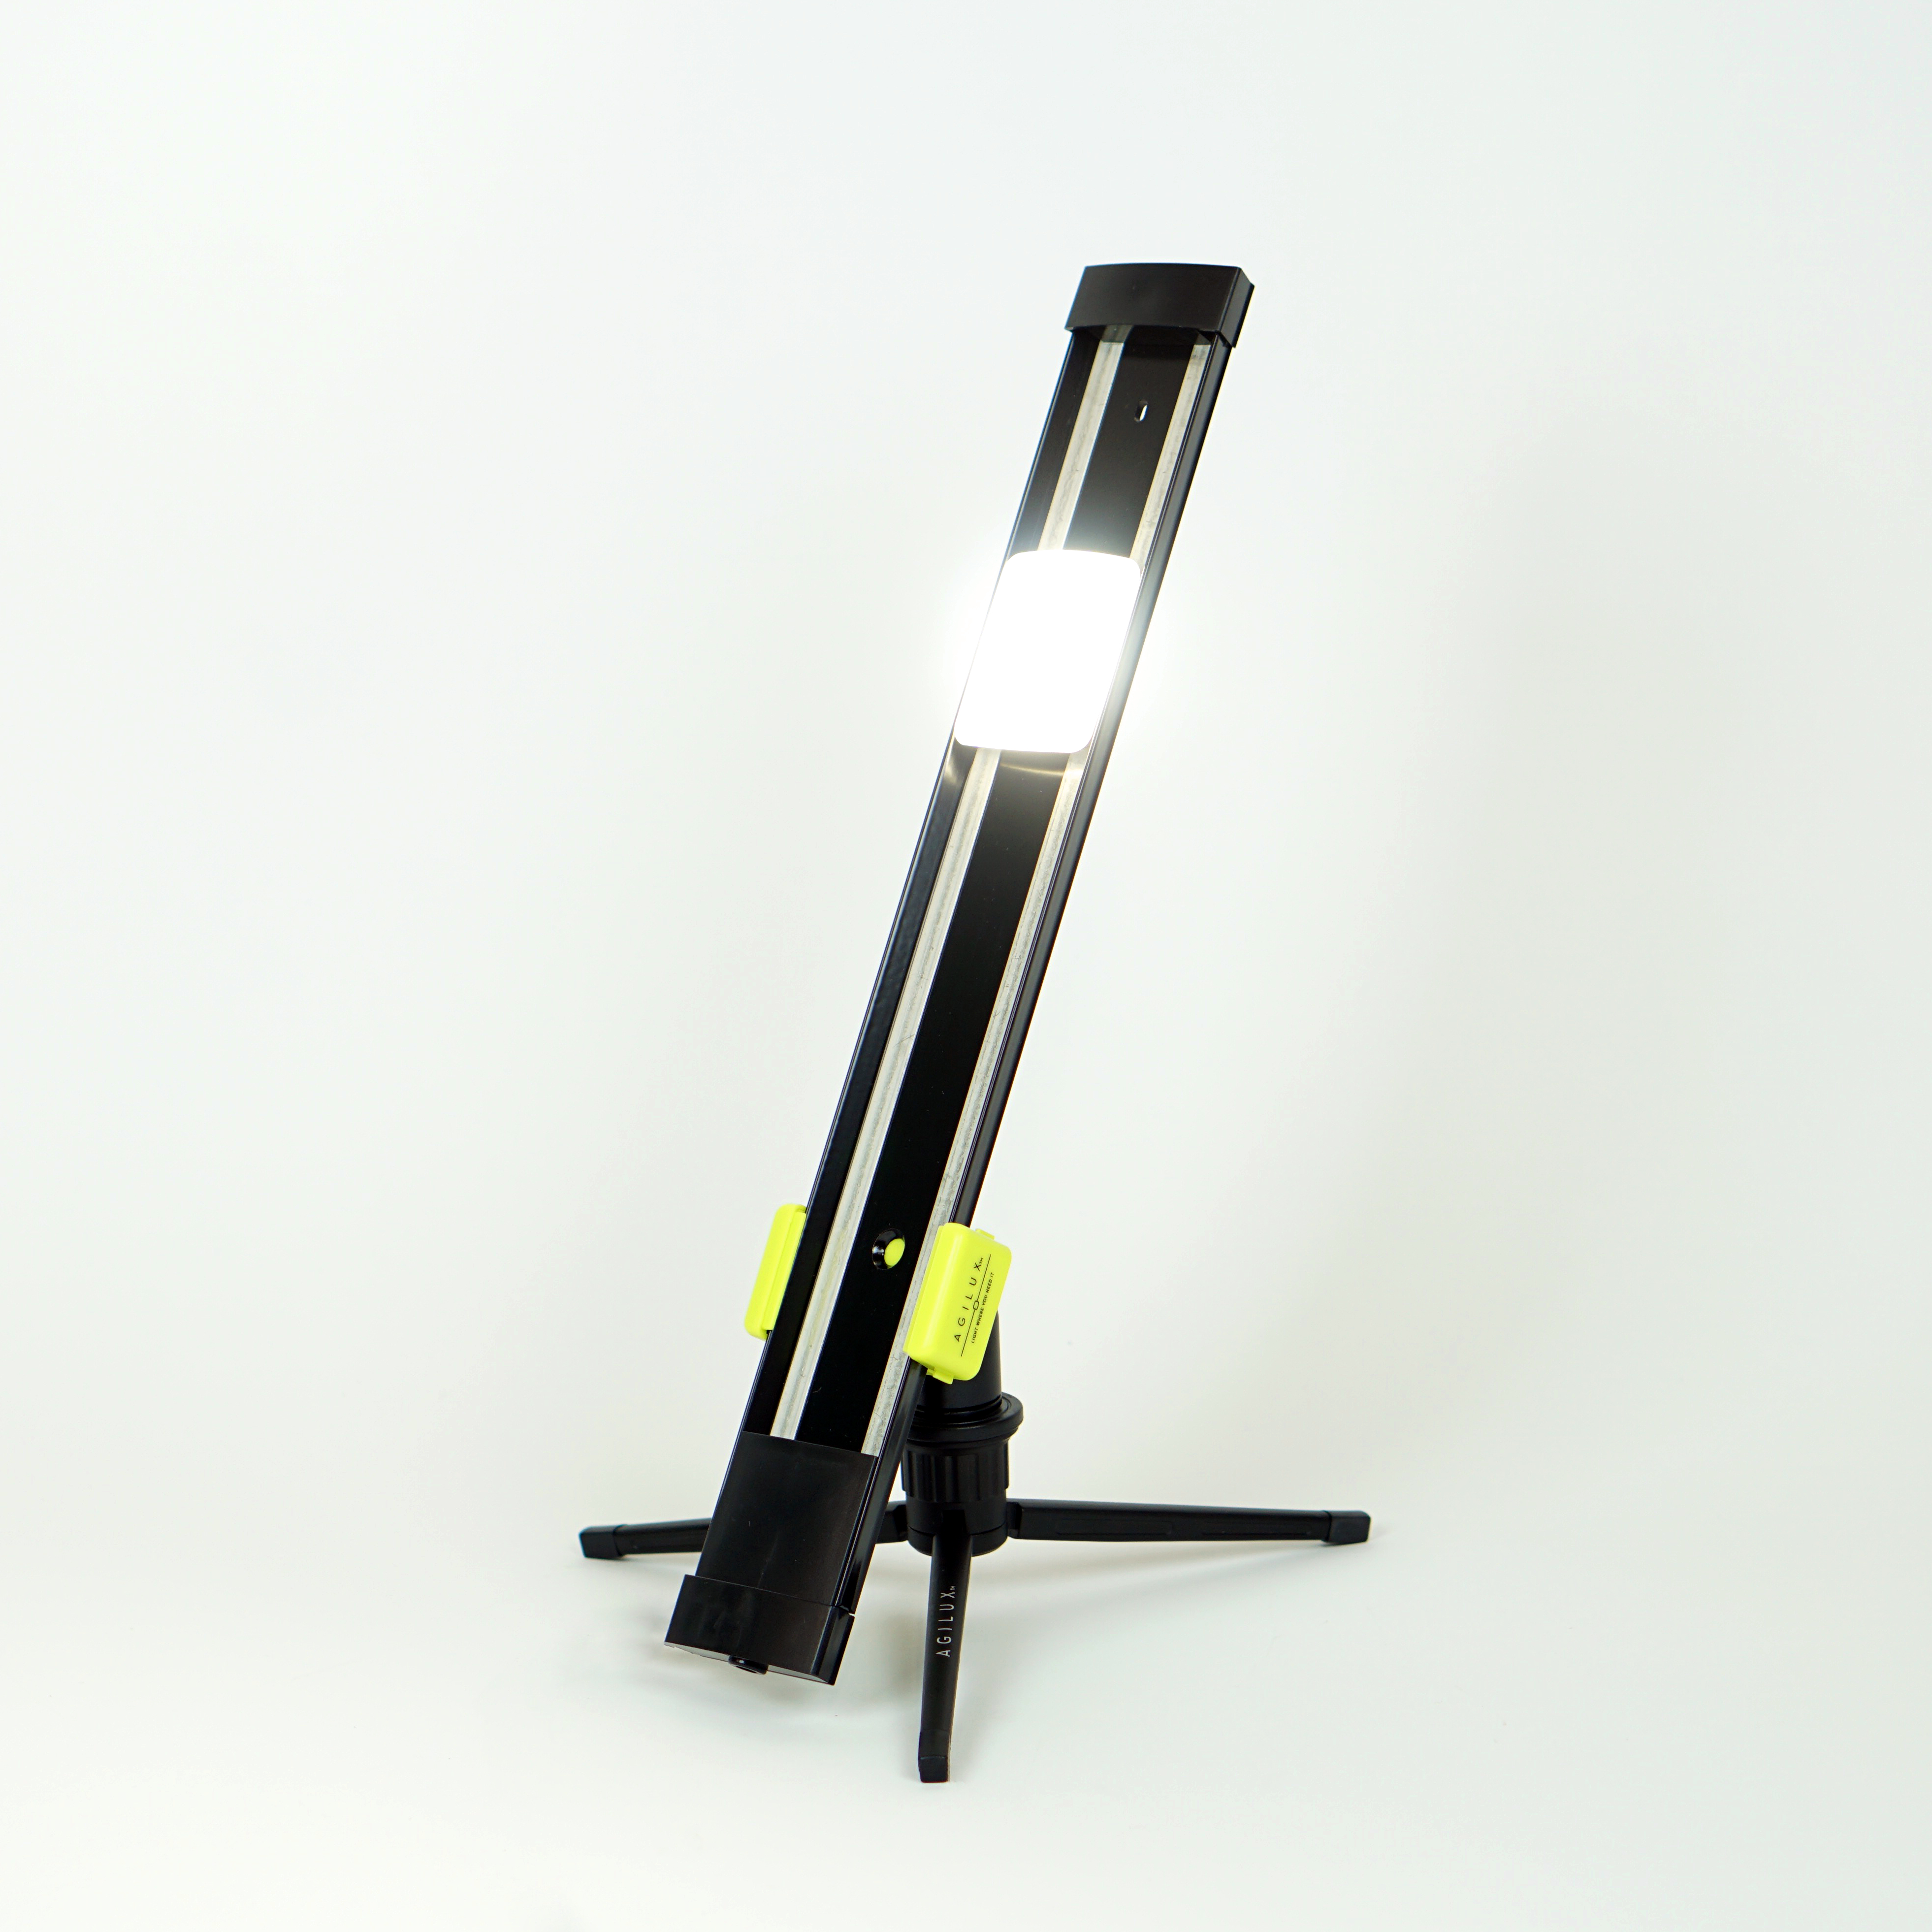 900 Lumen Portable Led Work Light With Mini Stand 18